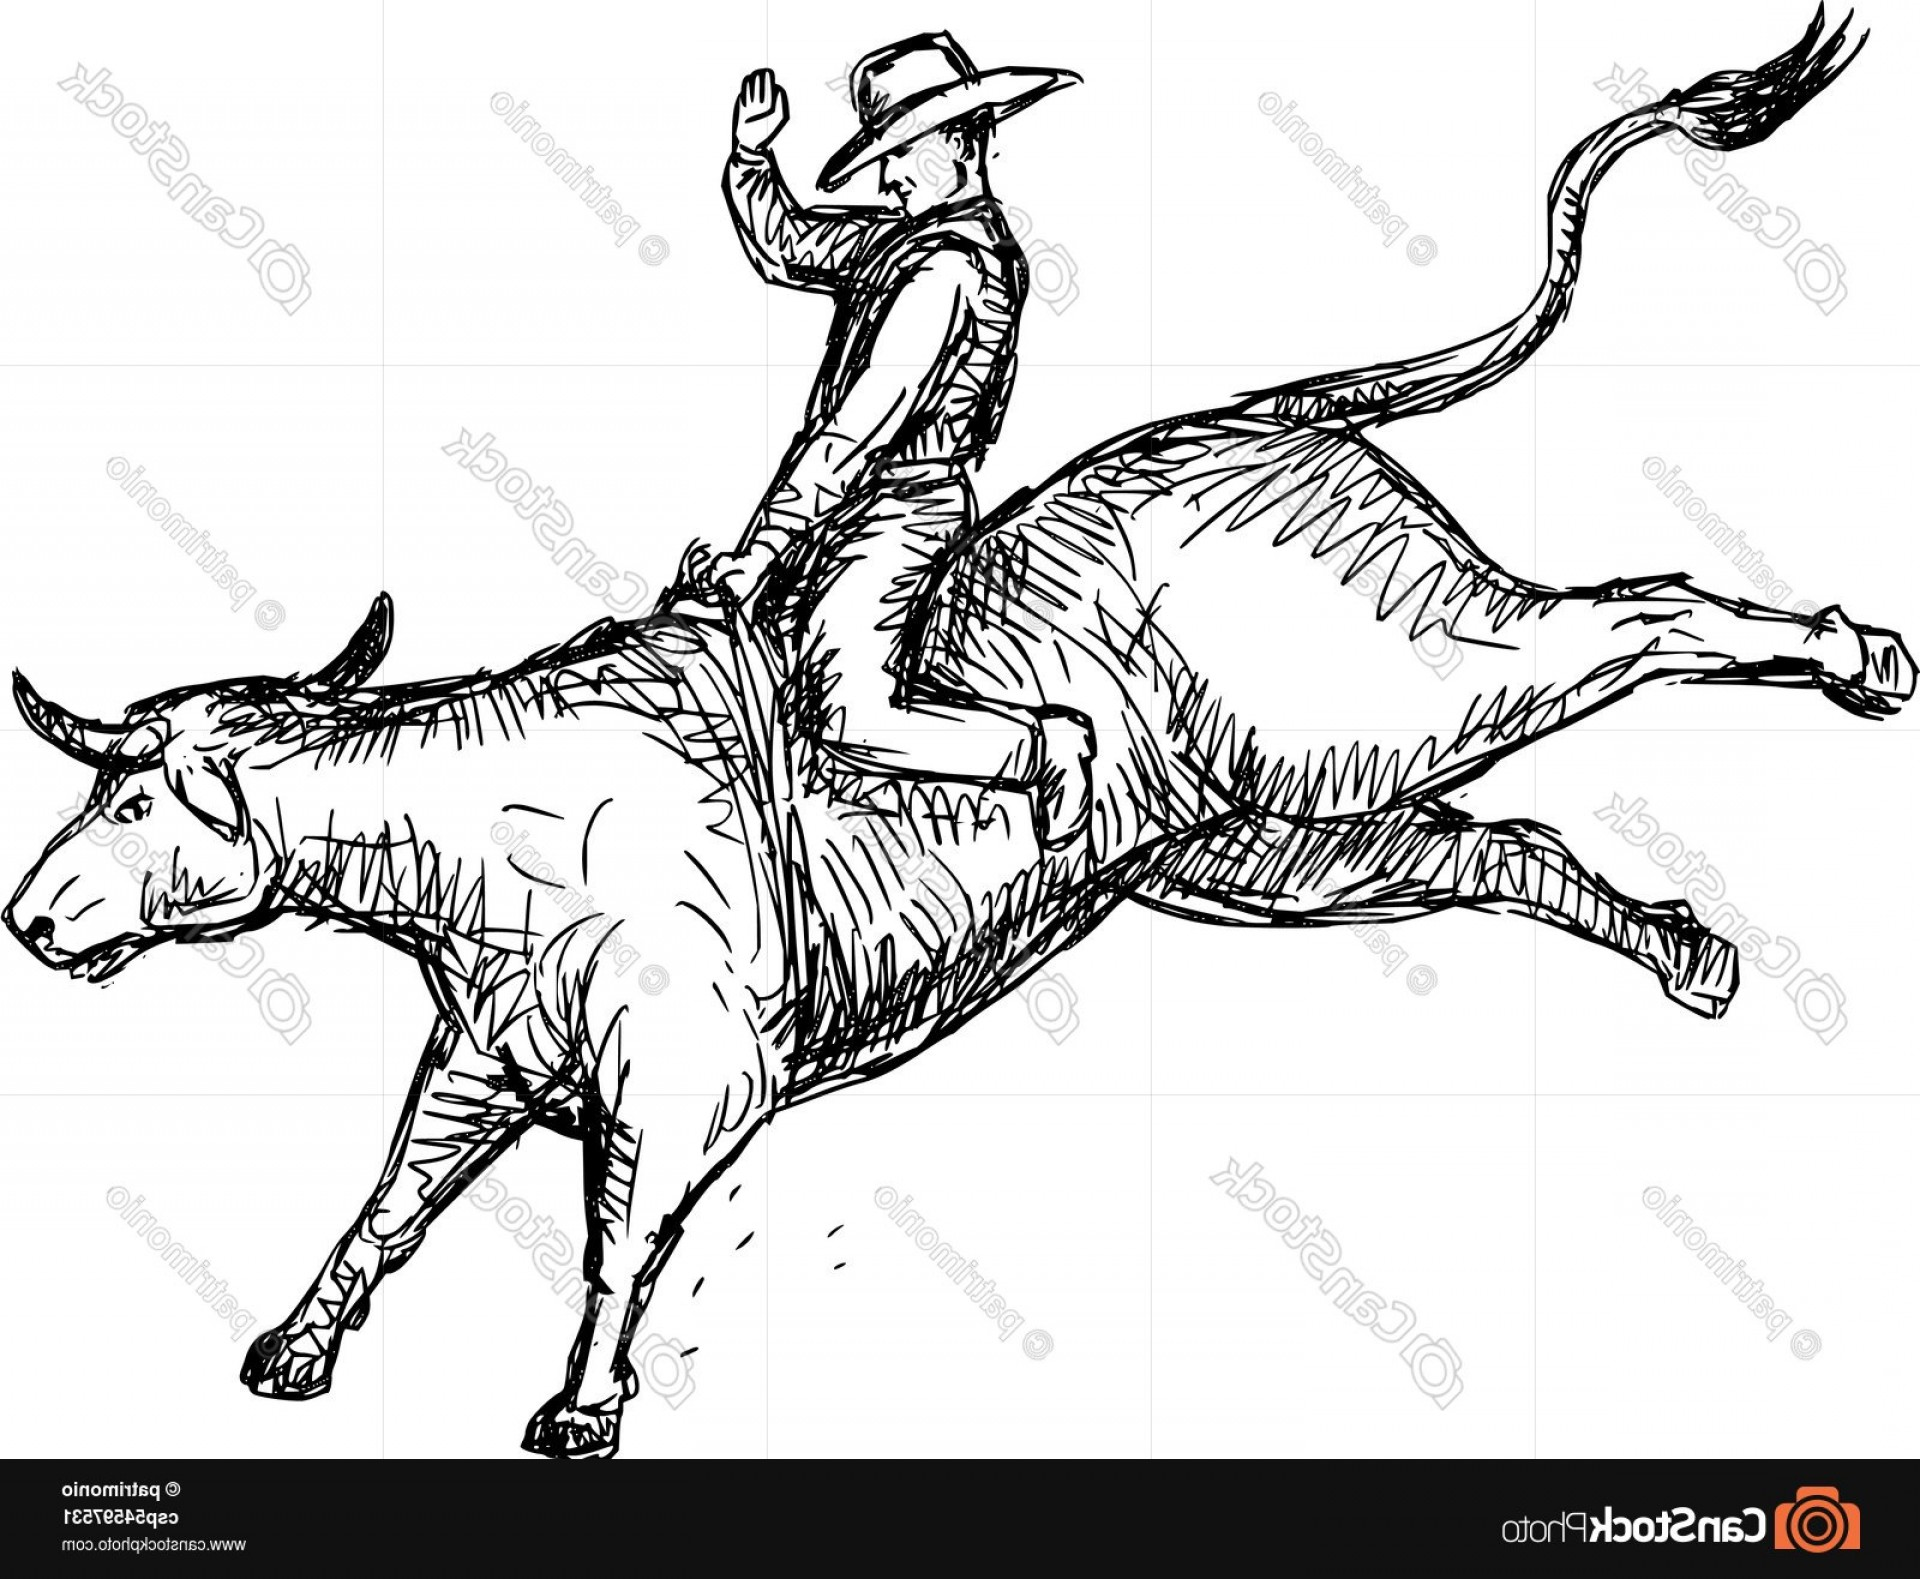 cowboy line drawing a black and white version of a vintage style line drawing line cowboy drawing